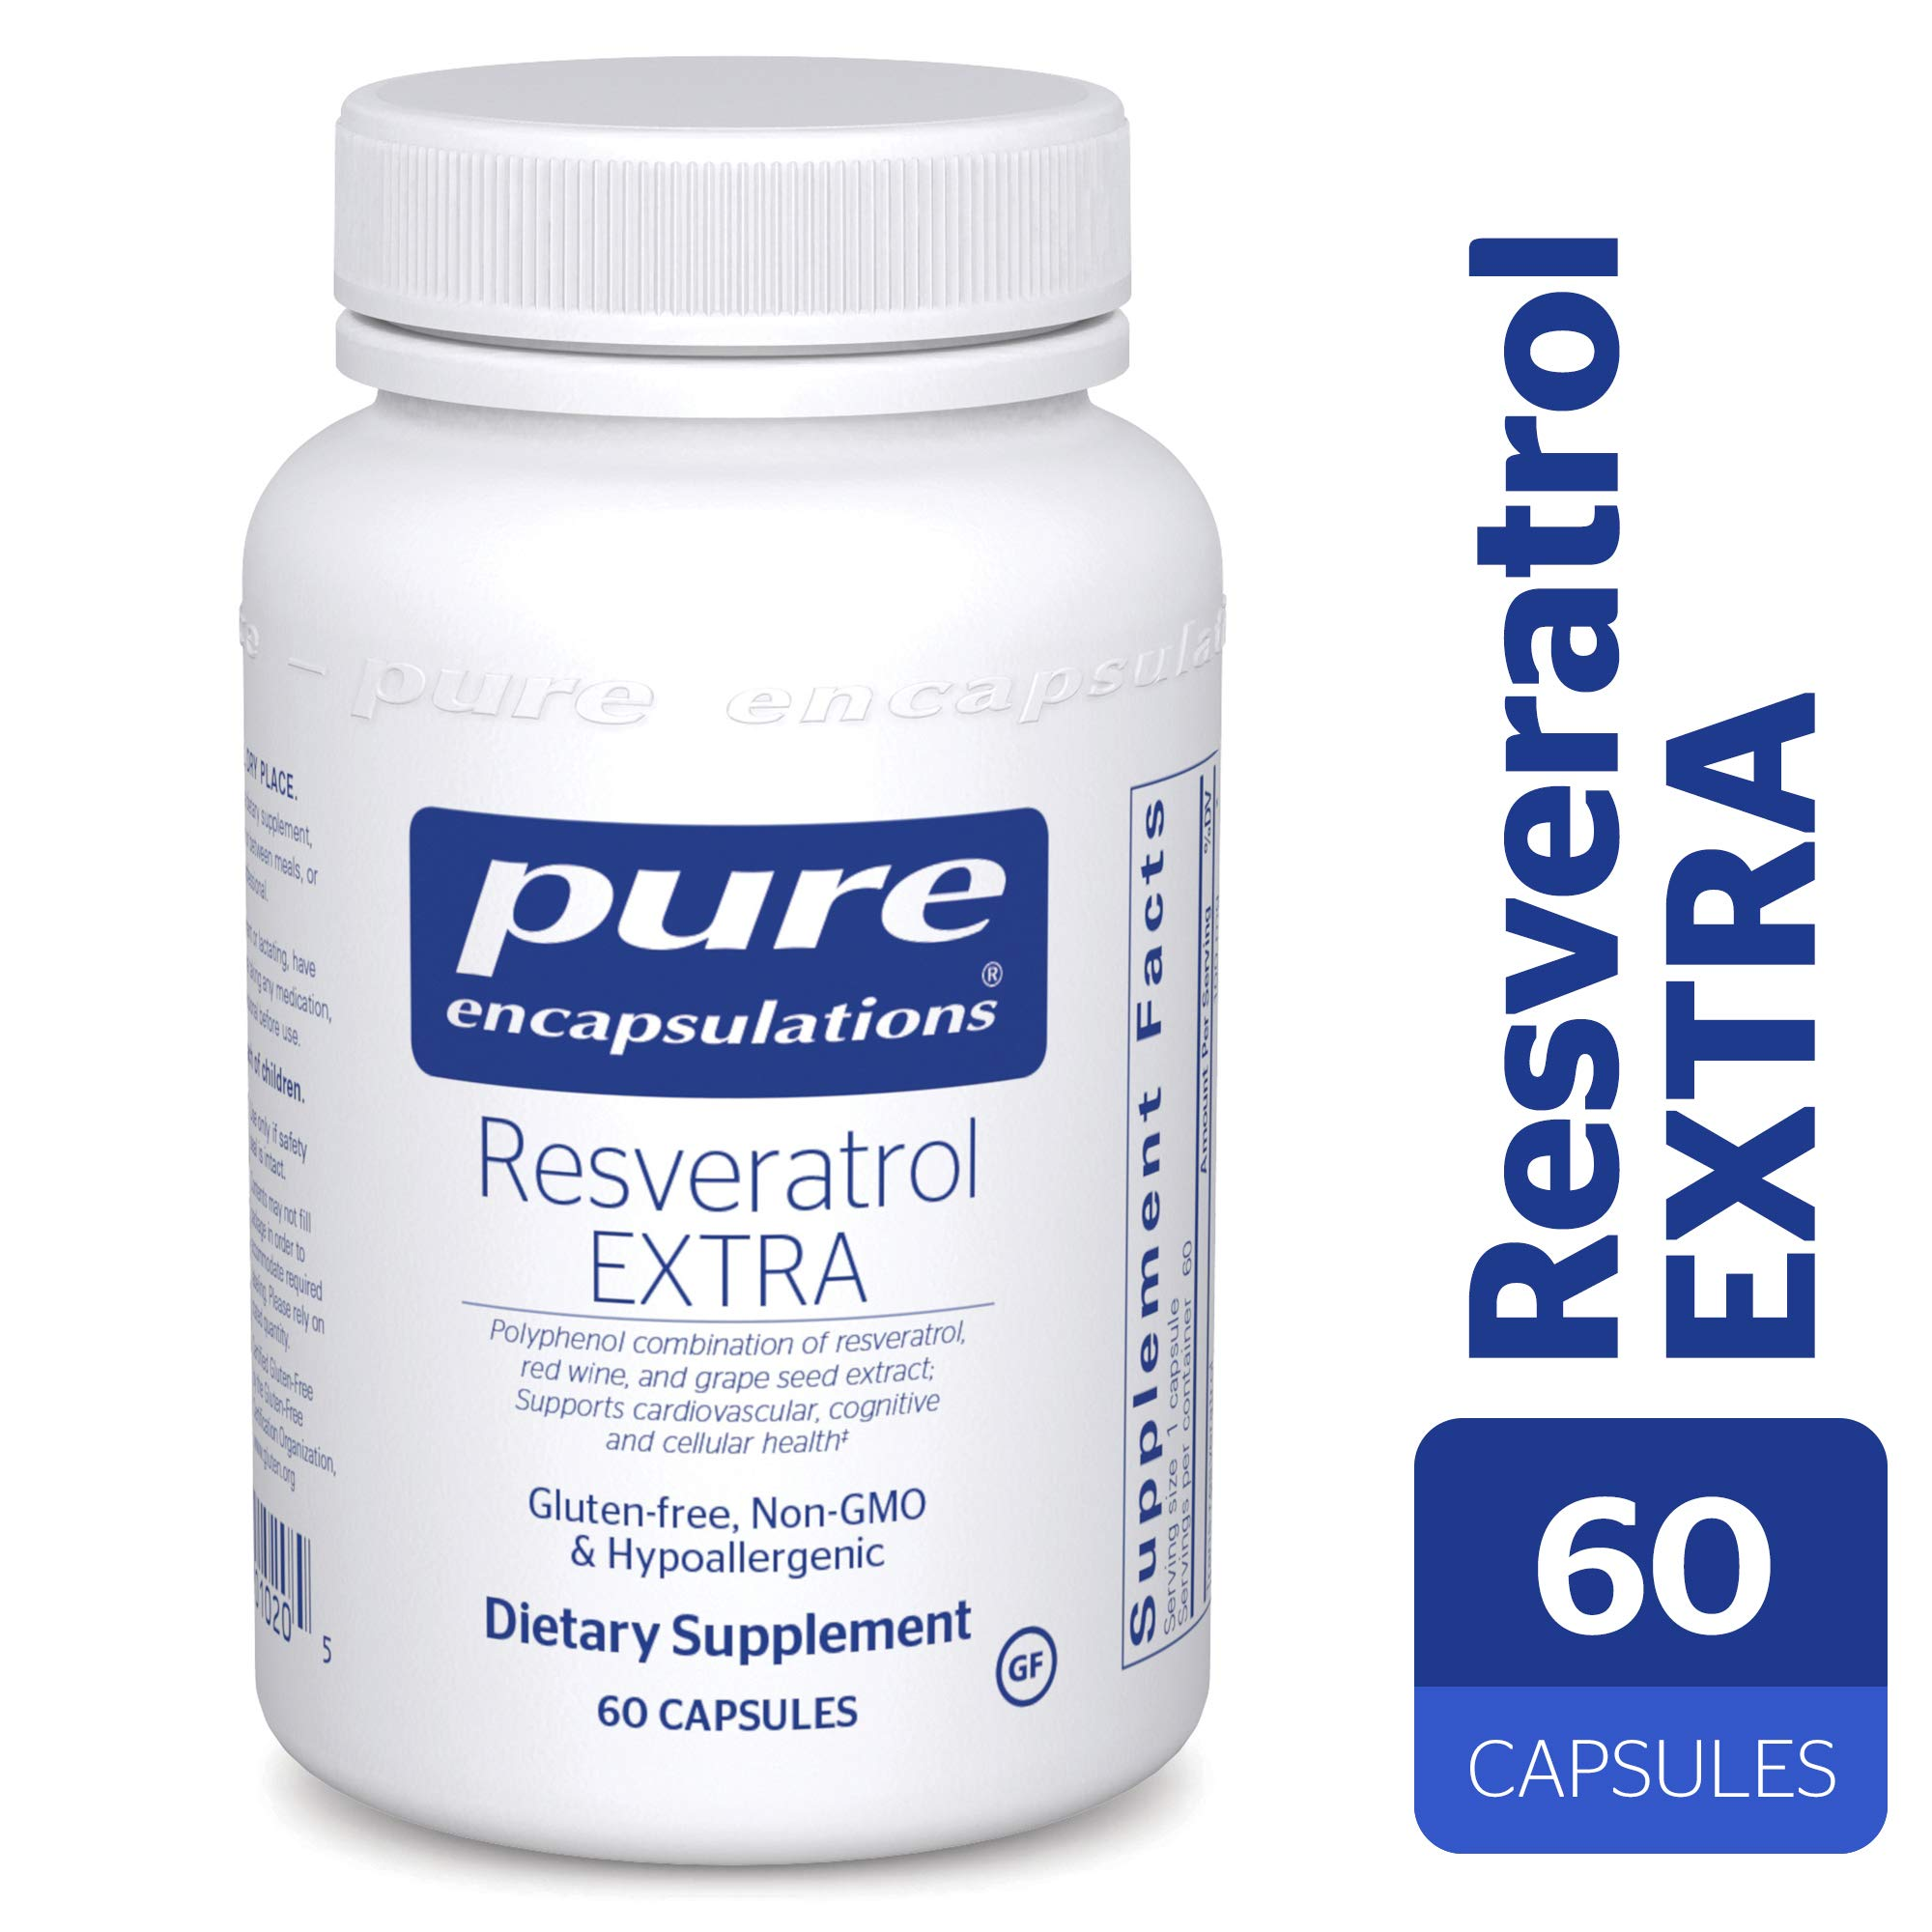 Pure Encapsulations - Resveratrol Extra - Hypoallergenic Dietary Supplement for Healthy Cellular and Cardiovascular Function* - 60 Capsules